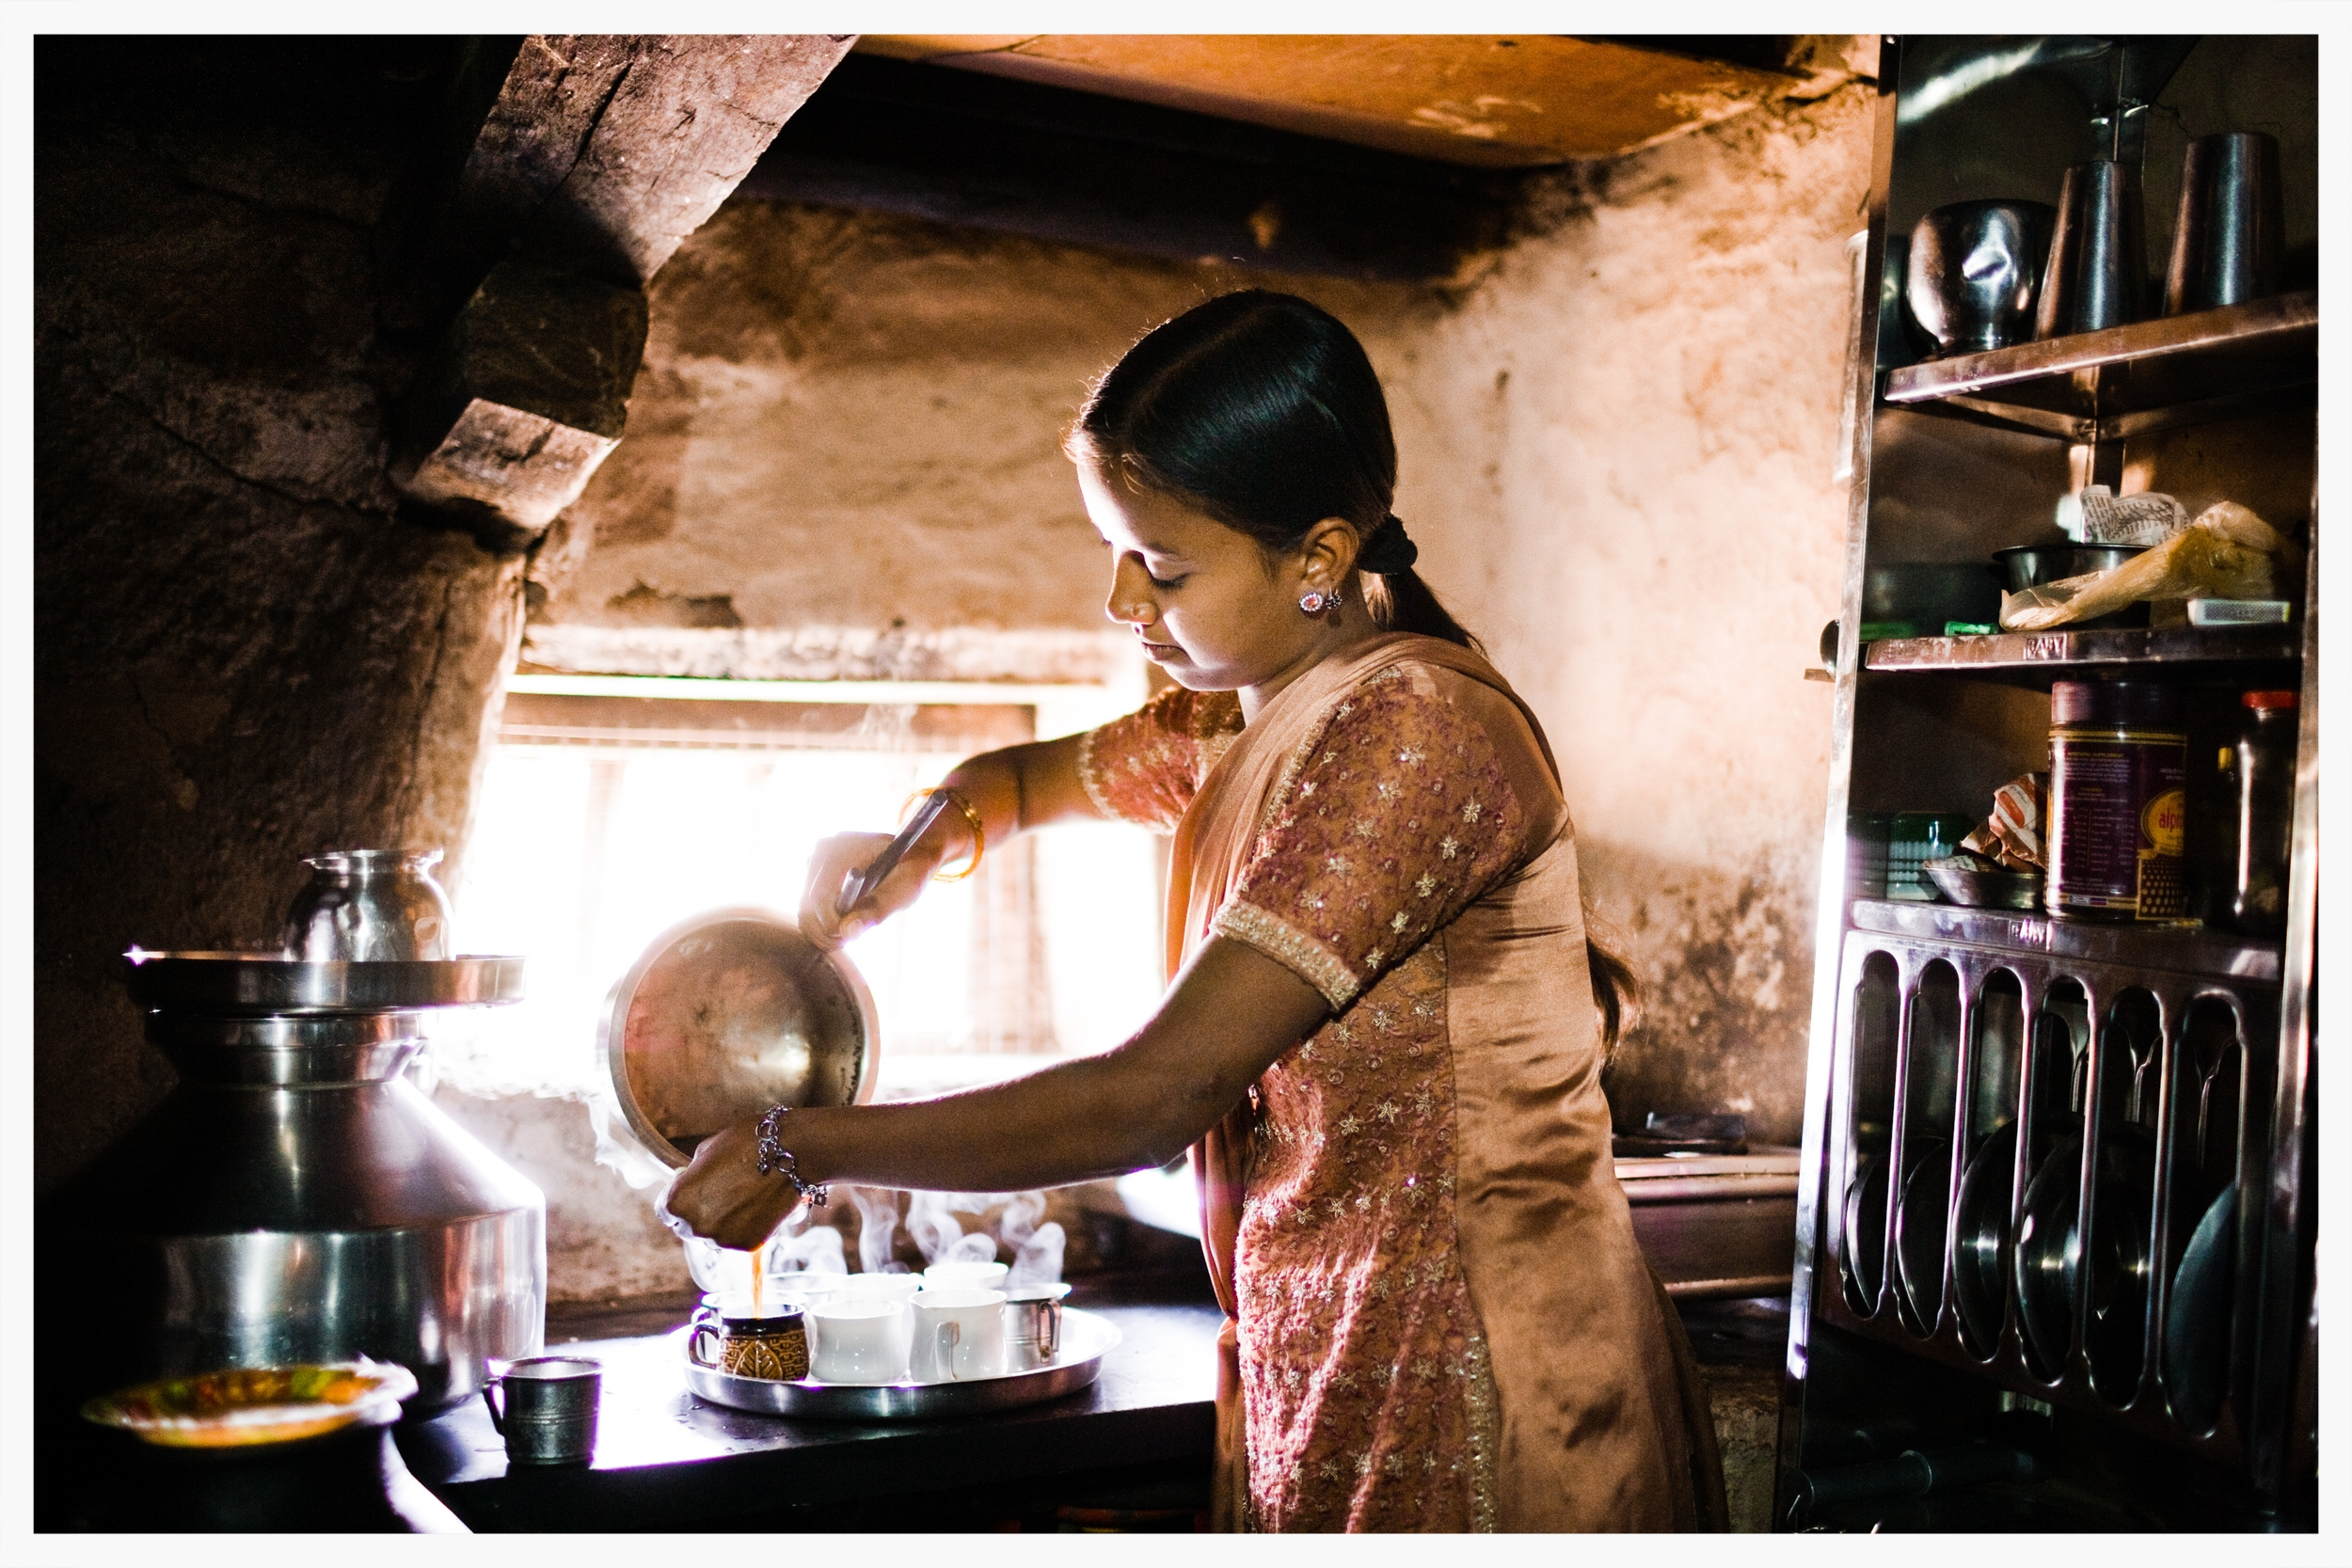 Jaya prepares chai at home. Indian Dalits, Being Untouchable. Photo: © Marcus Perkins